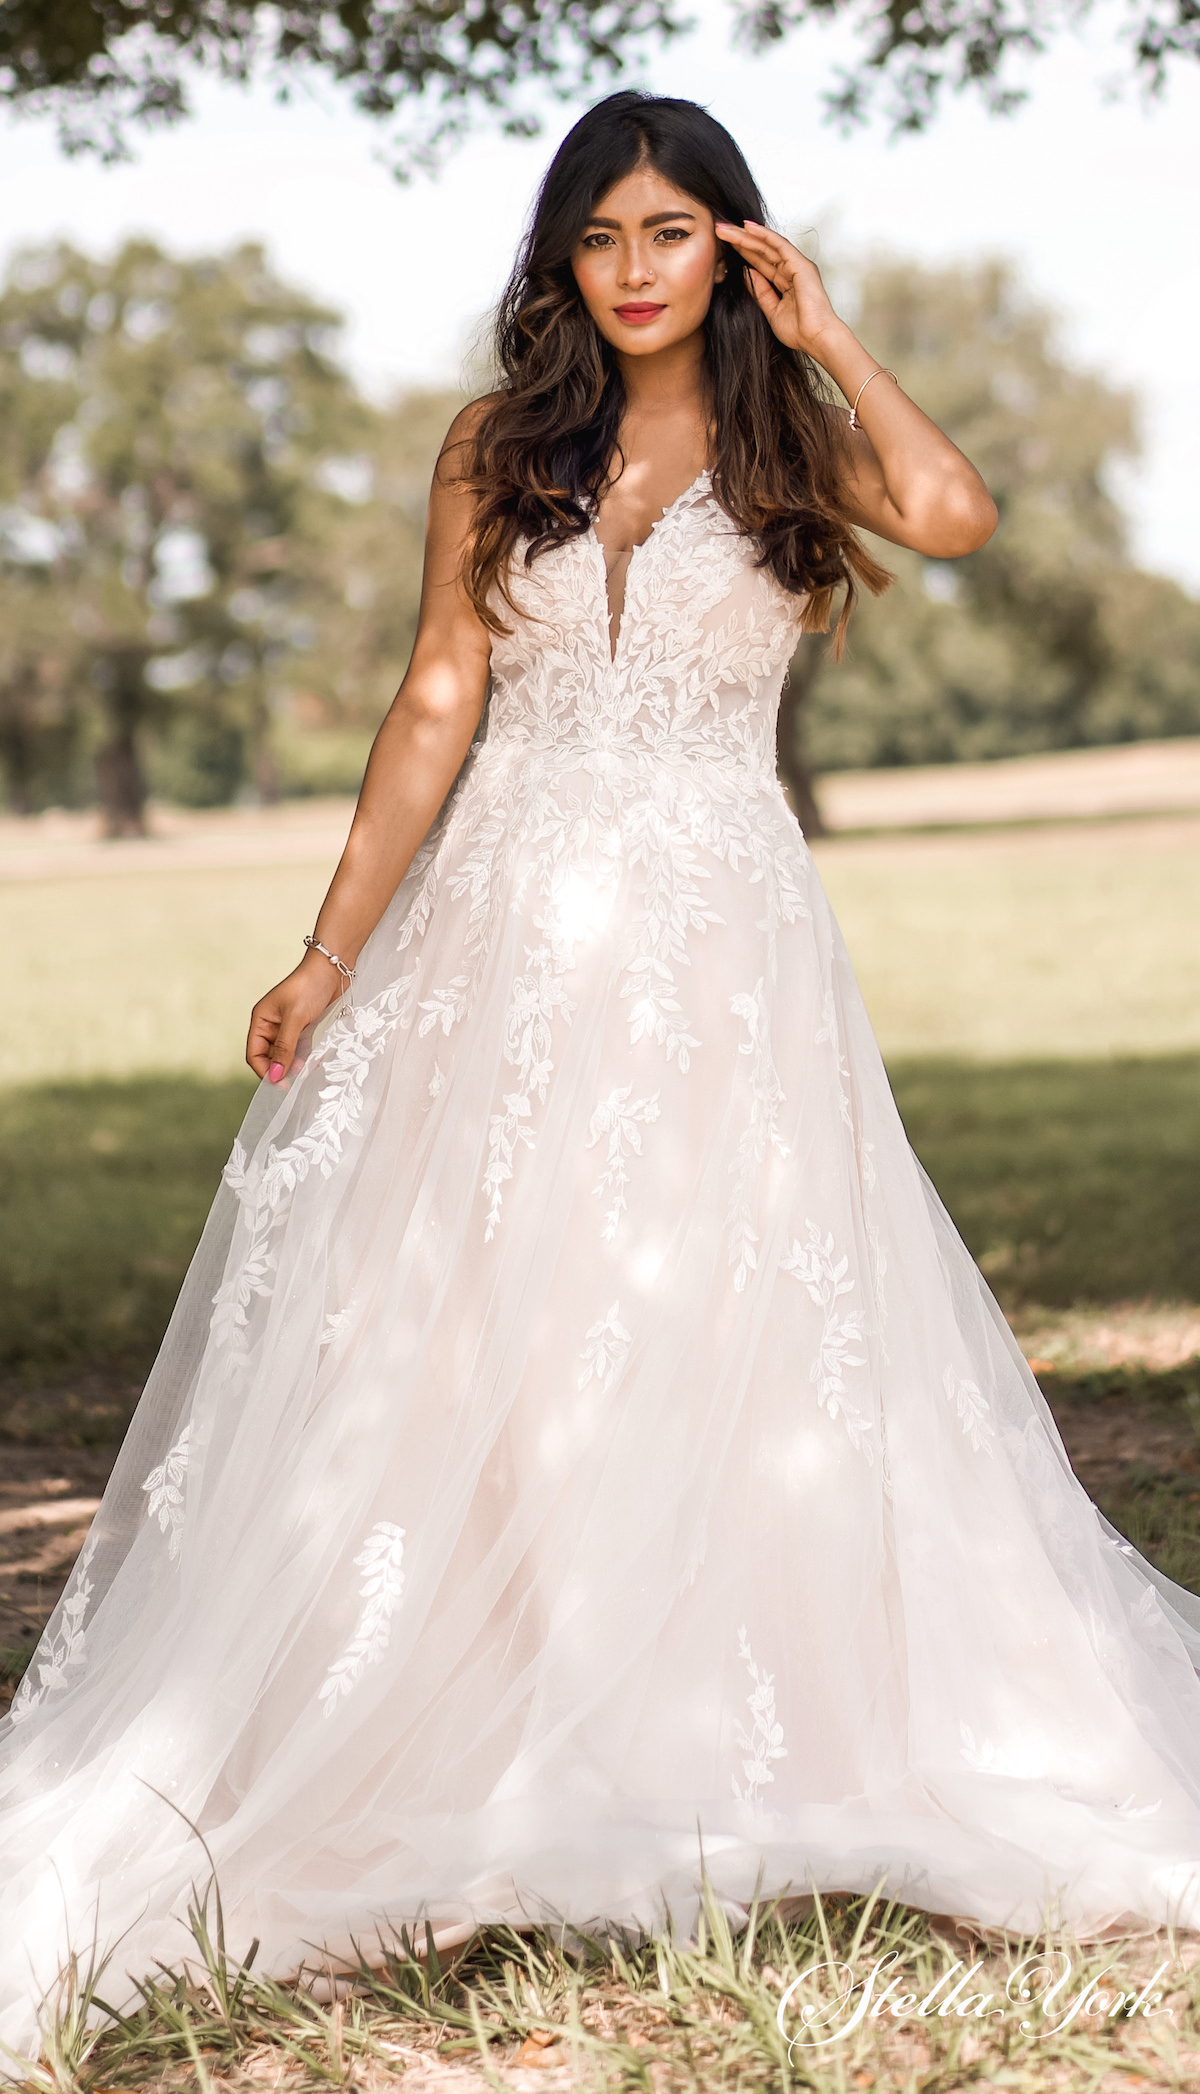 Ball gown wedding dresses by Stella York 2021